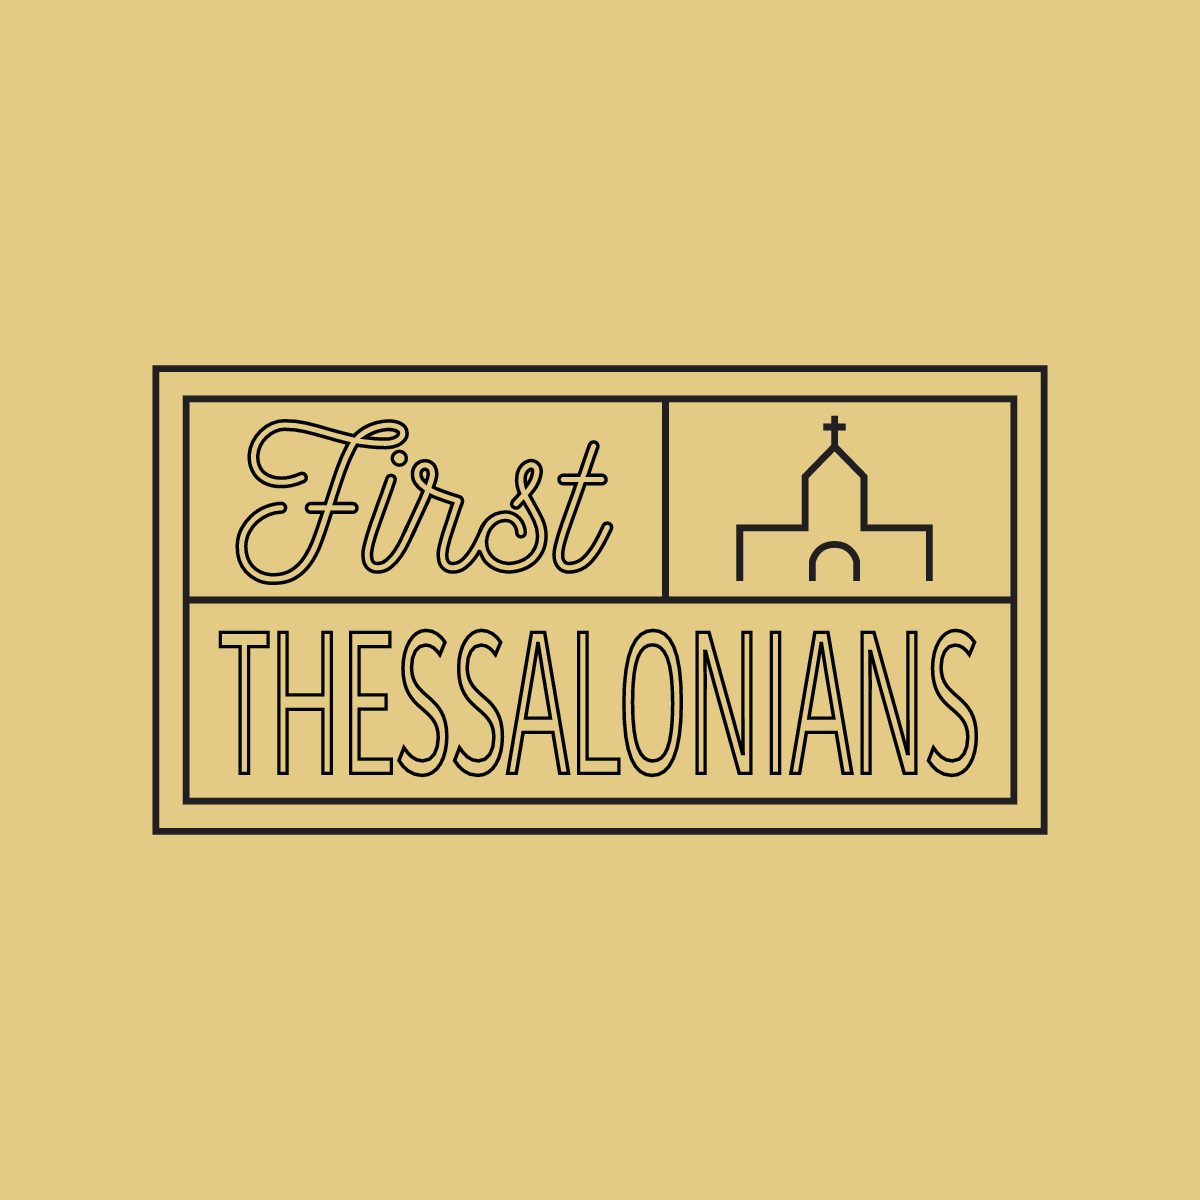 1 Thessalonians graphic.jpg